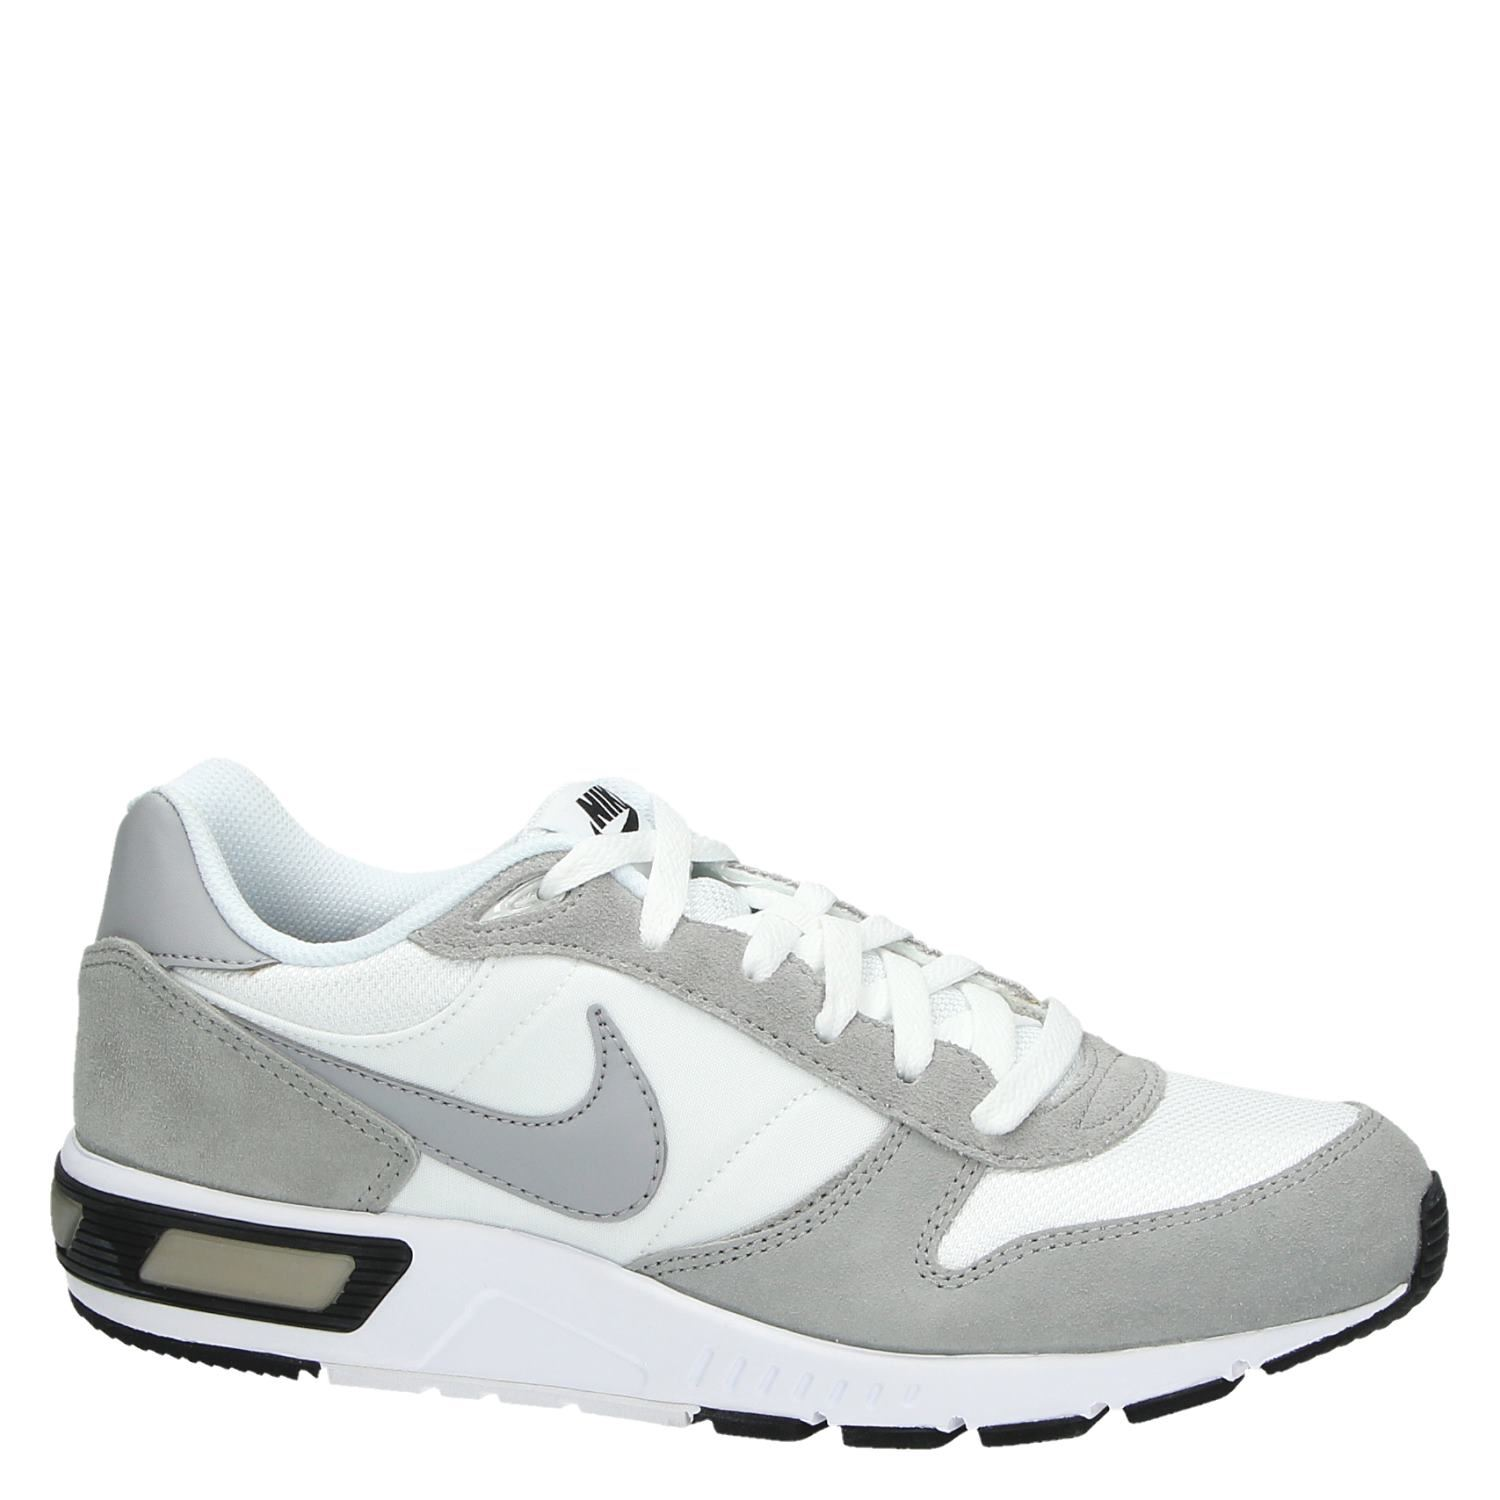 online store 4e2c0 52a7f Nike Nightgazer heren lage sneakers